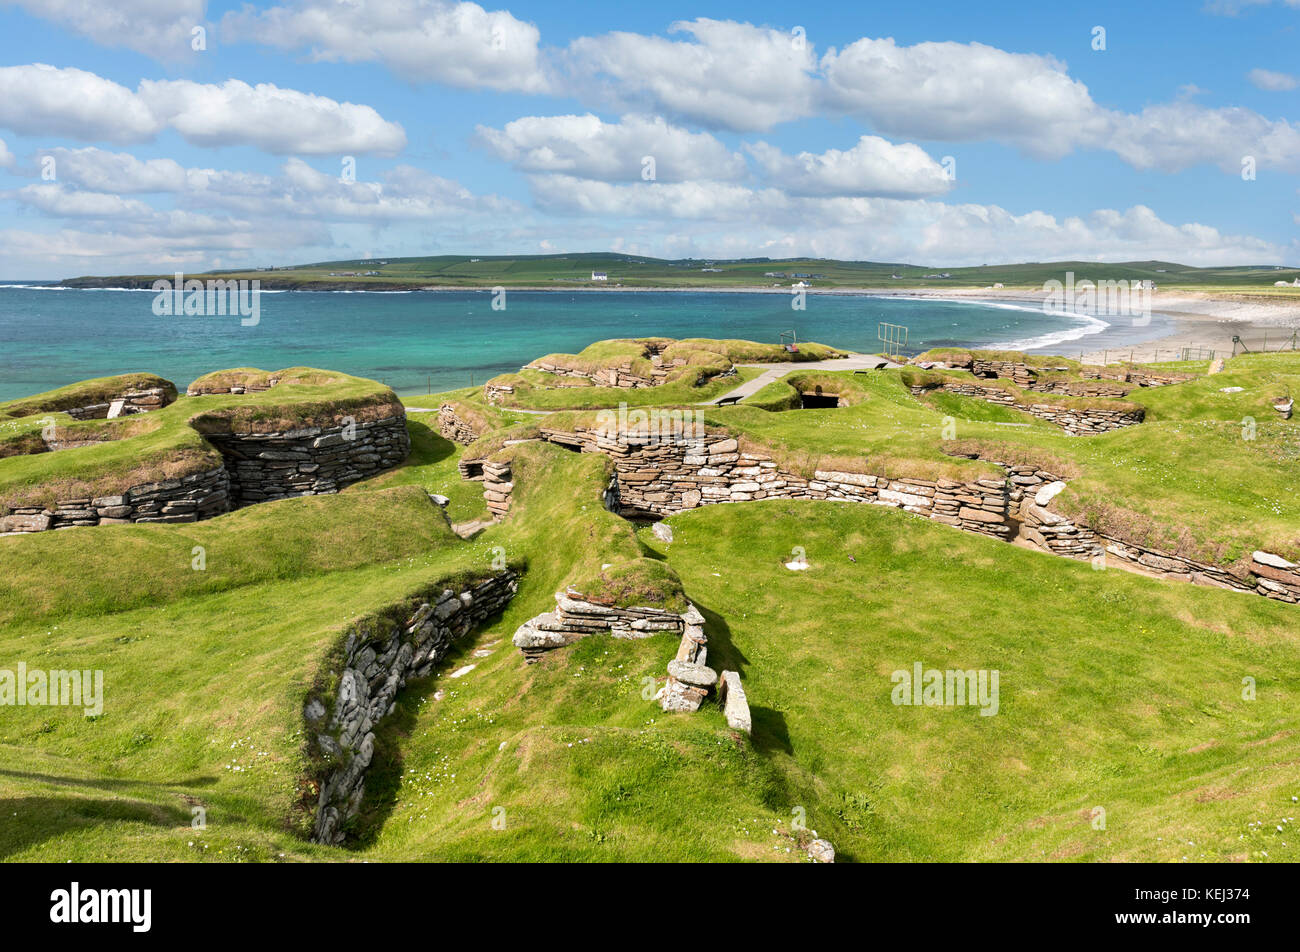 Neolithic settlement of Skara Brae, Mainland, Orkney, Scotland, UK - Stock Image